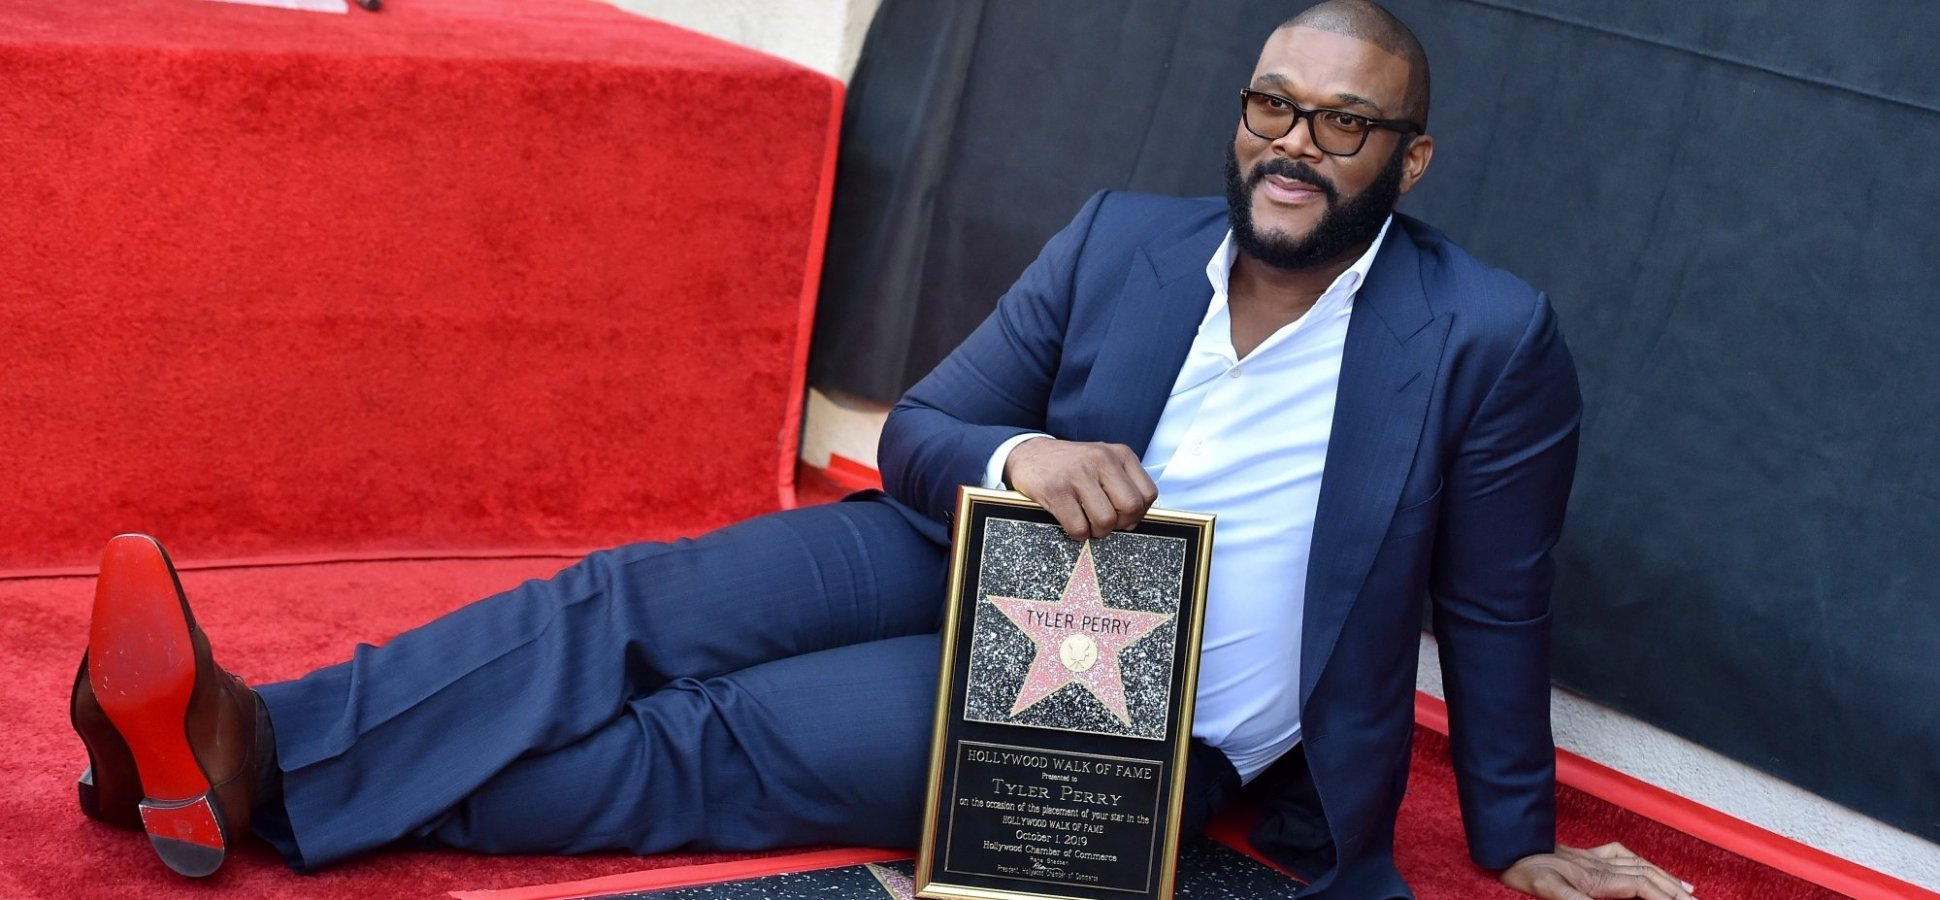 Media Mogul Tyler Perry Was Once Homeless. Here's How He Kept His Dream Alive